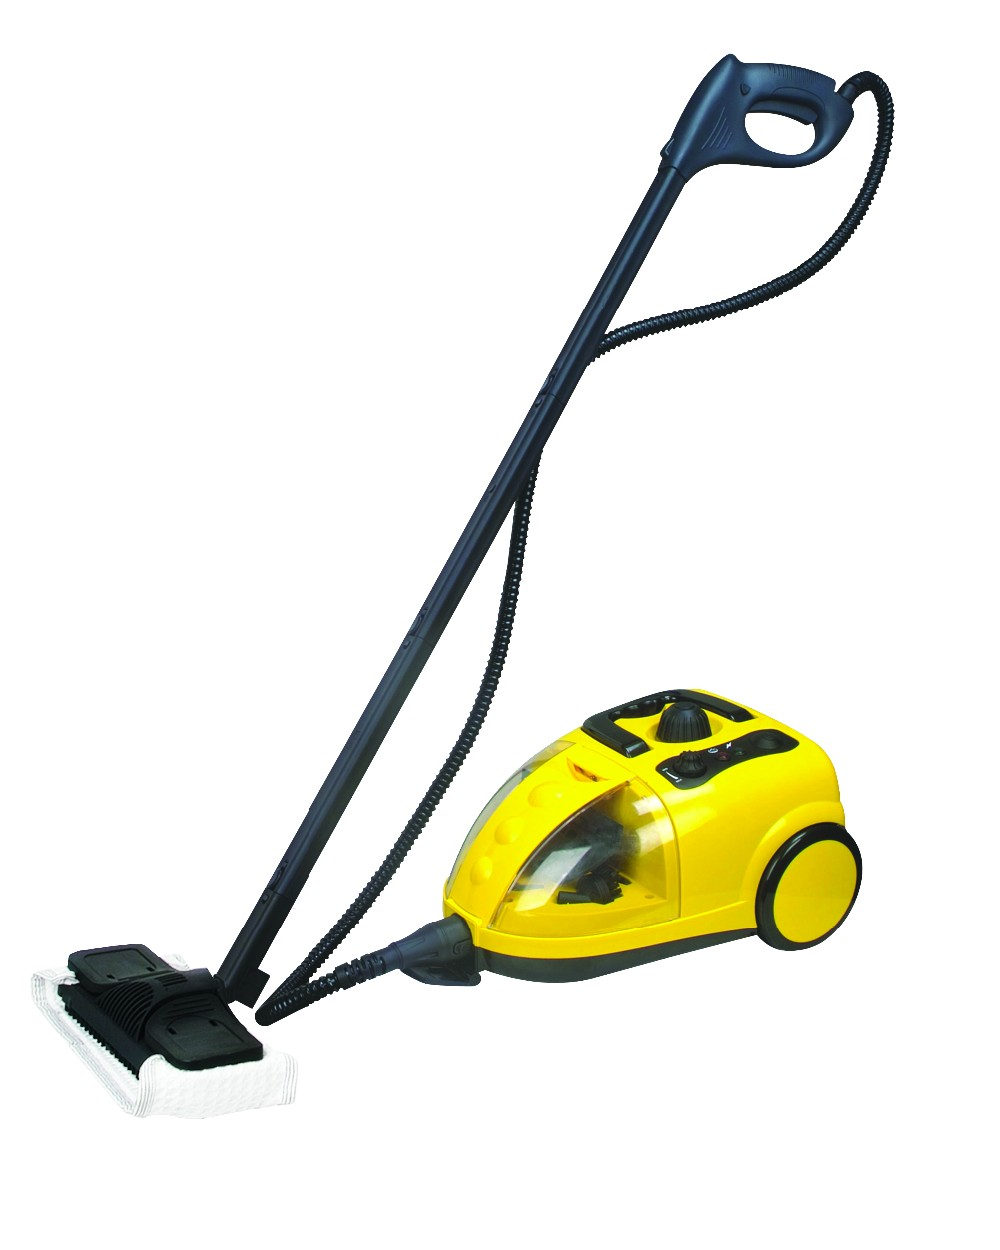 Carpet steam jet cleaner washing machine, portable floor & car steam cleaner for cars 1500w